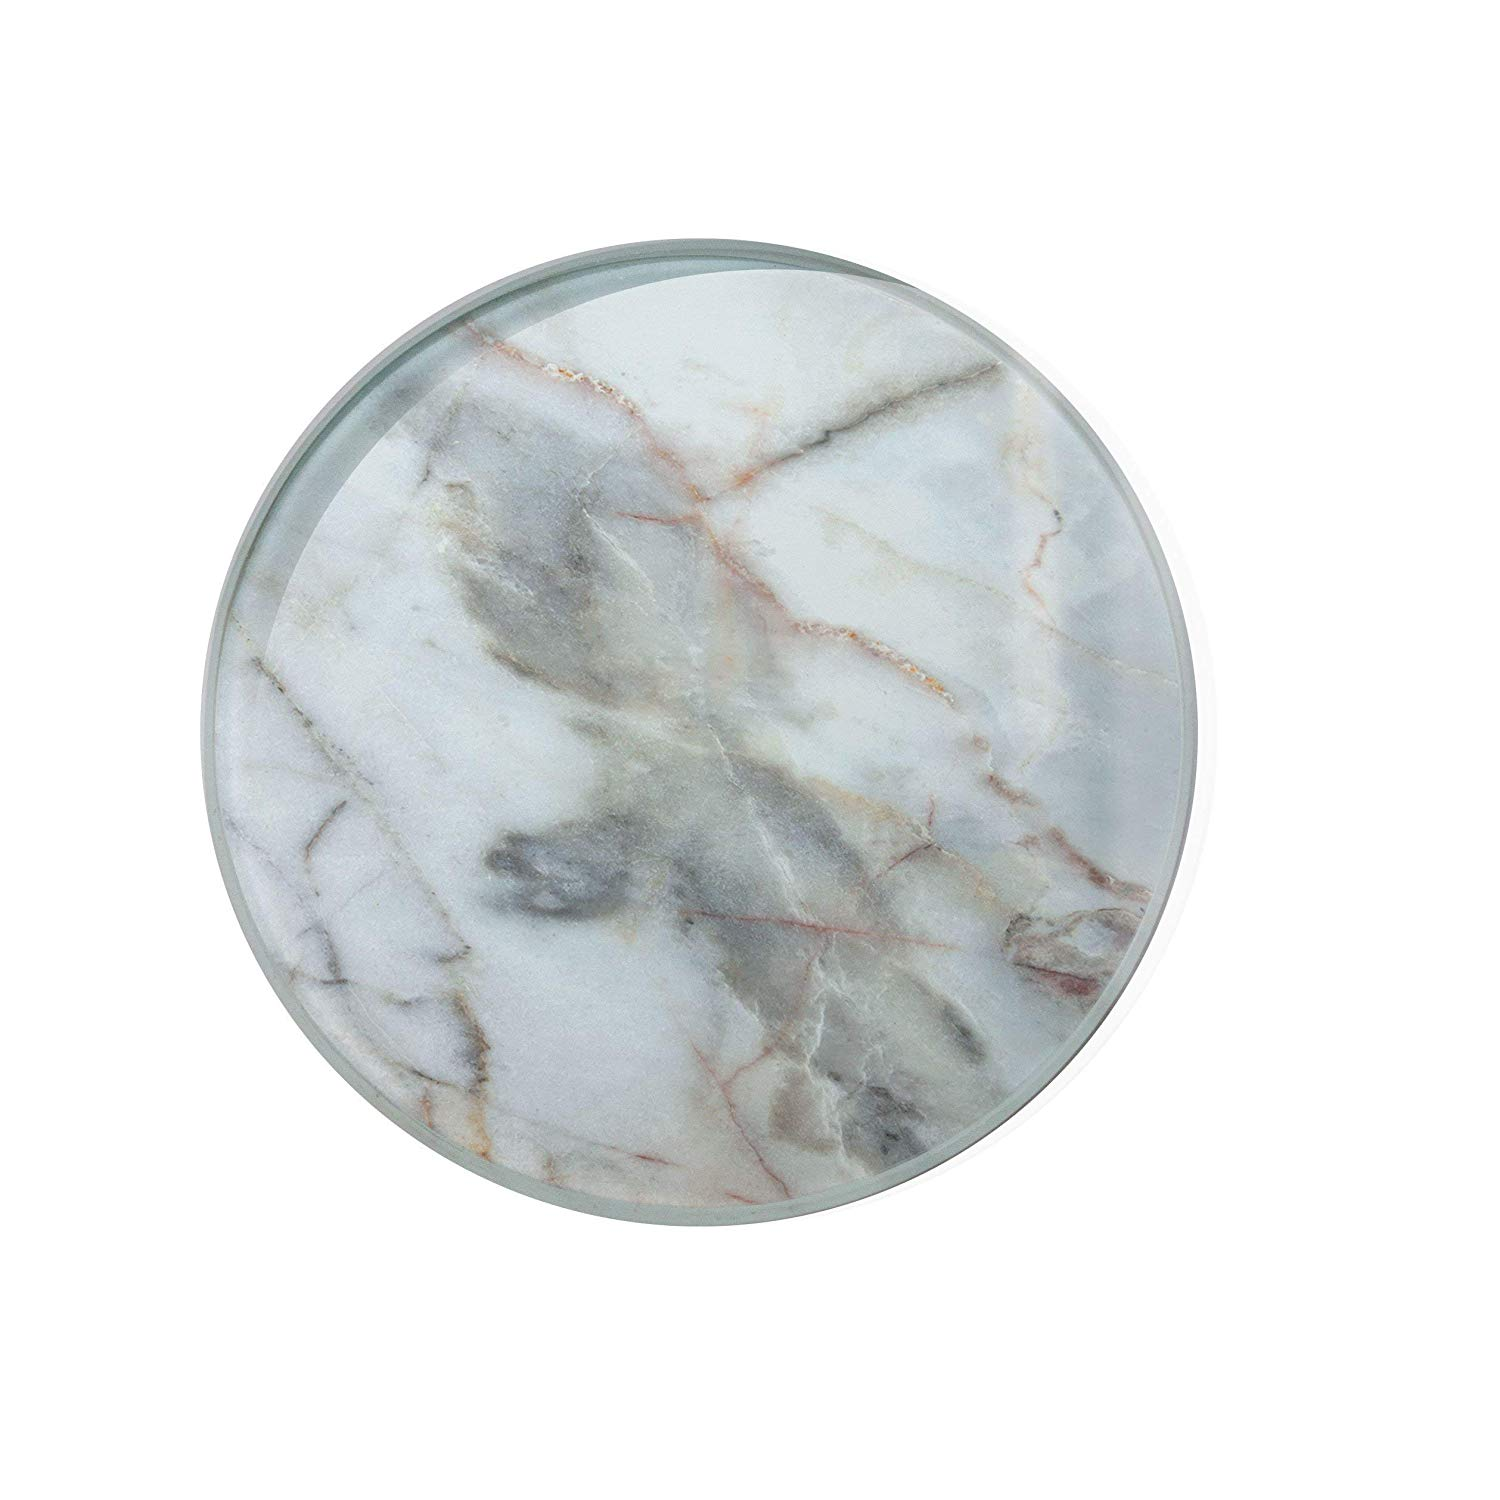 Old White Marble Glass Coaster For Drinks Housewarming Gift Coaster Drink Mat Tea Rug Coaster Tempered Glass Wine Mat Hardboard Coaster ZZ8171